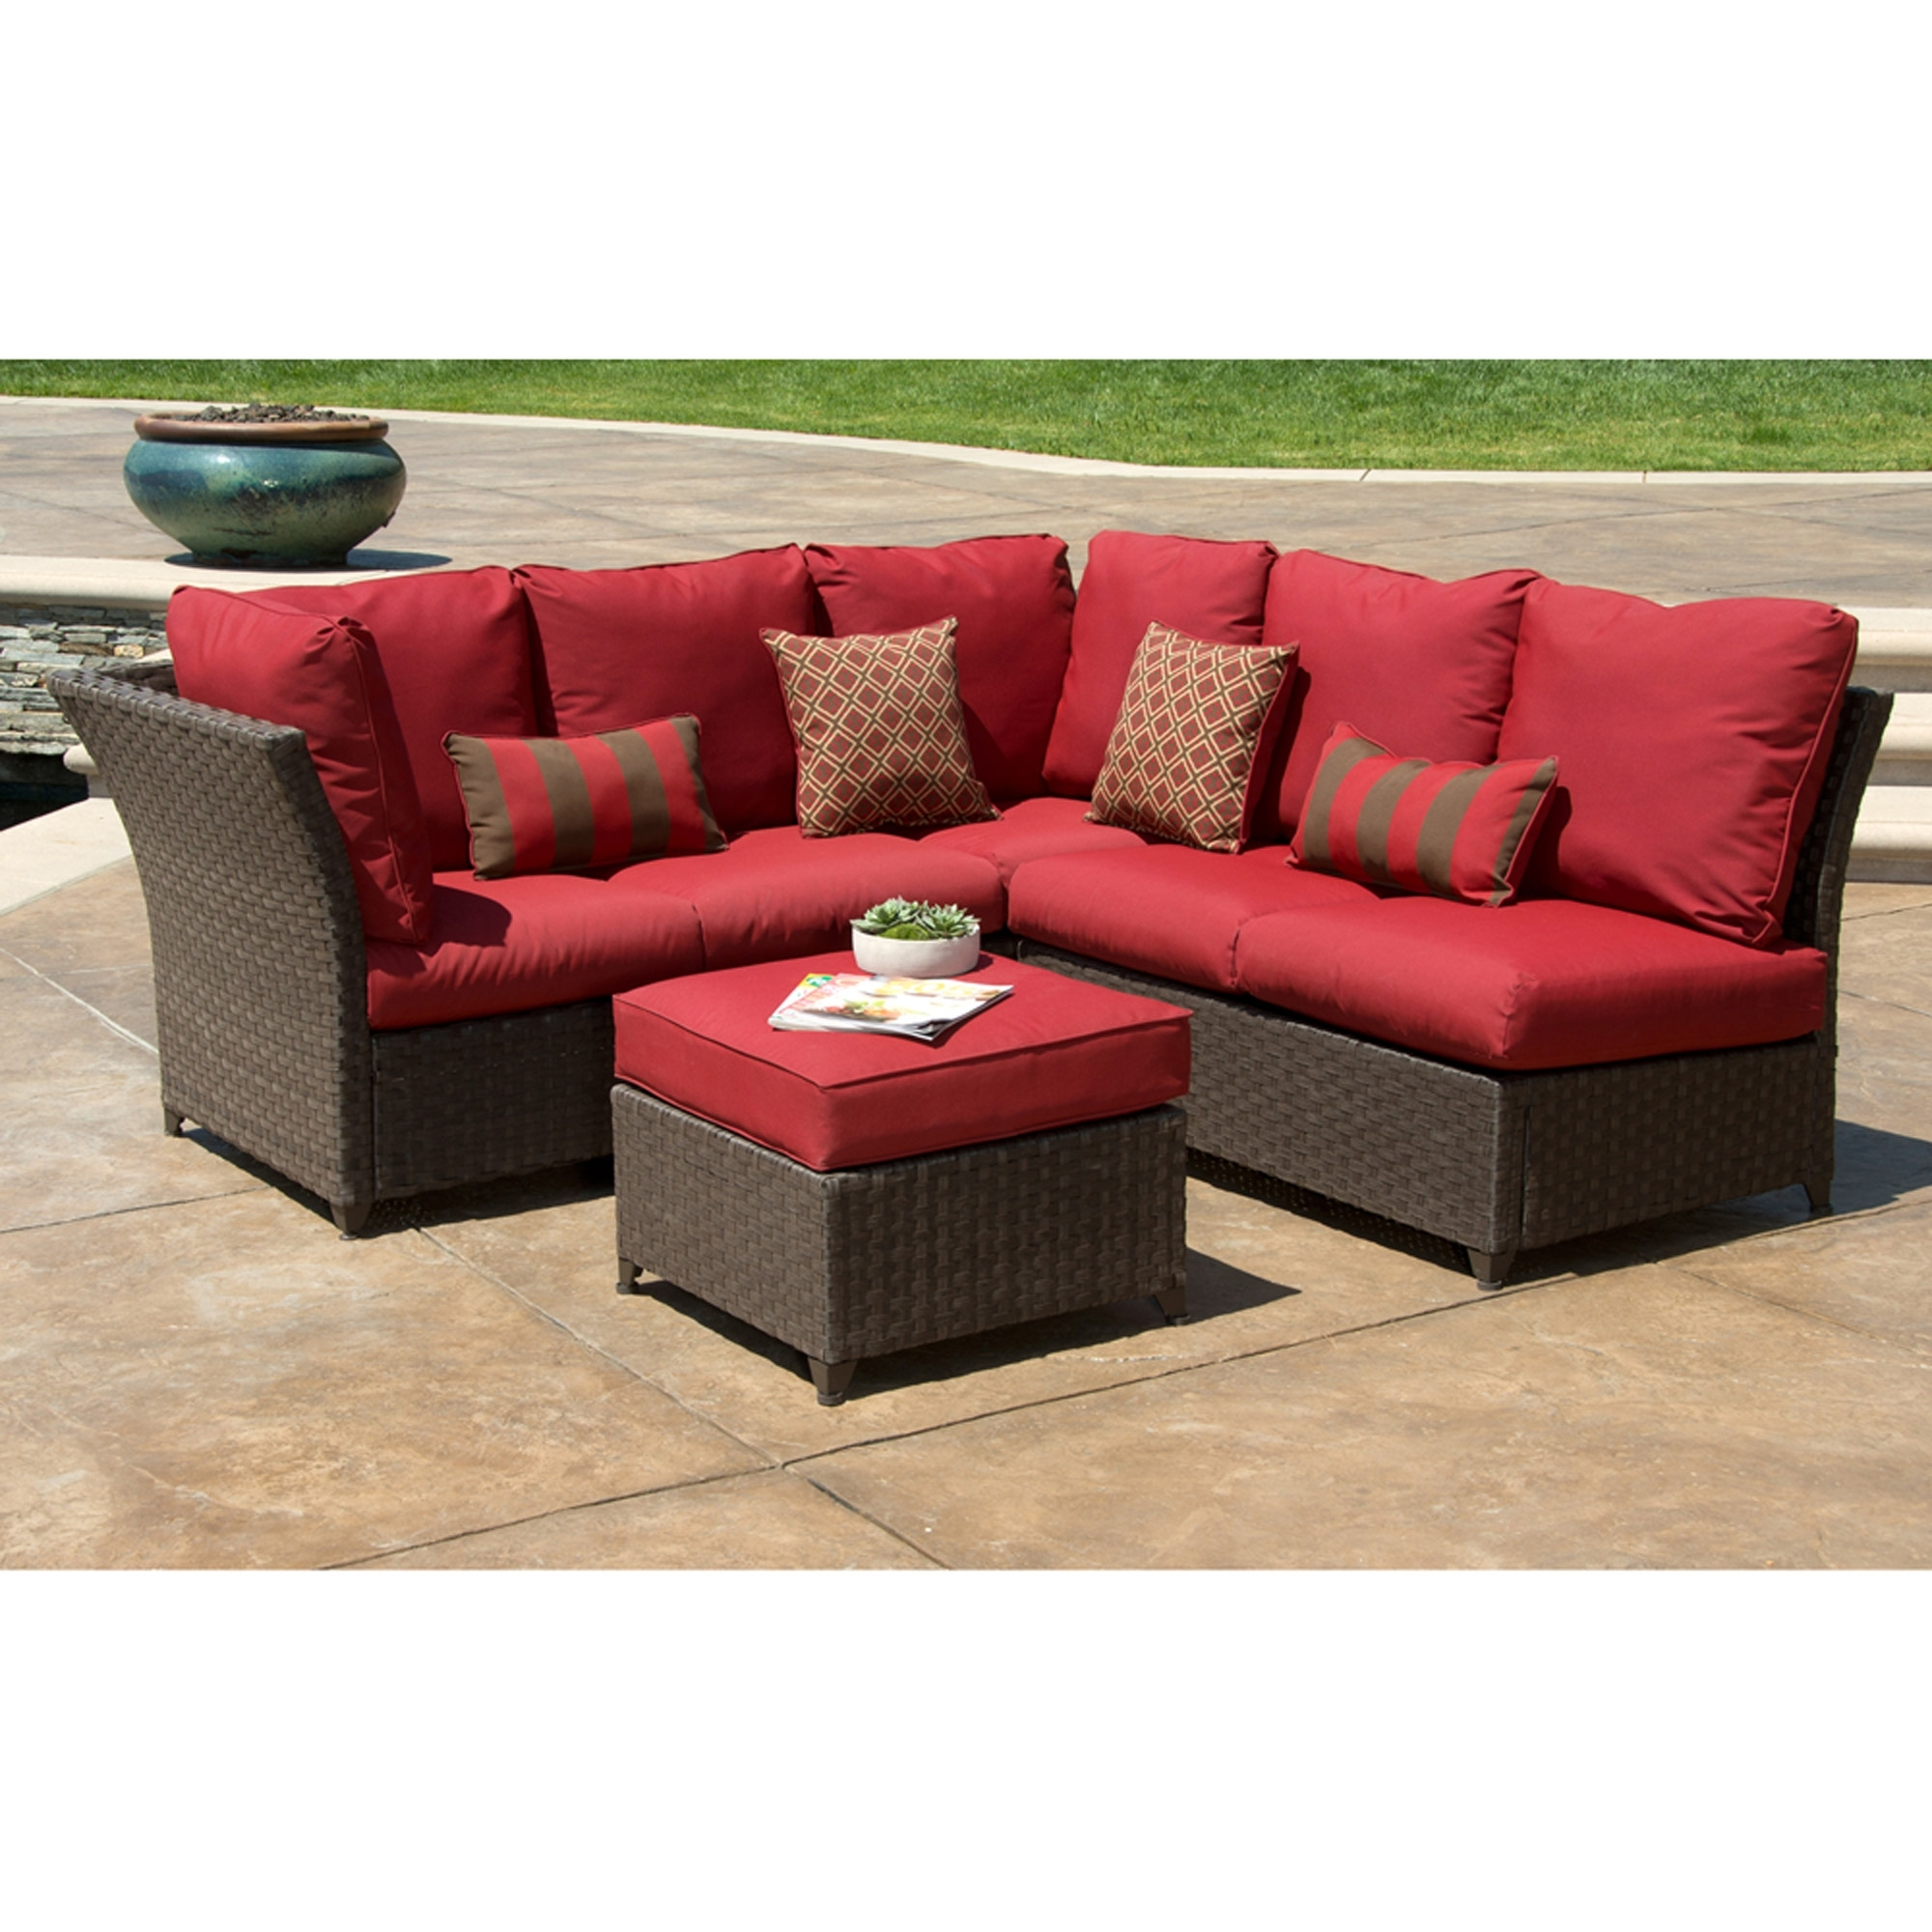 Stunning Walmart Sectional Sofas 30 For Sectional Sofas Tampa Fl Intended For Tampa Fl Sectional Sofas (View 5 of 10)